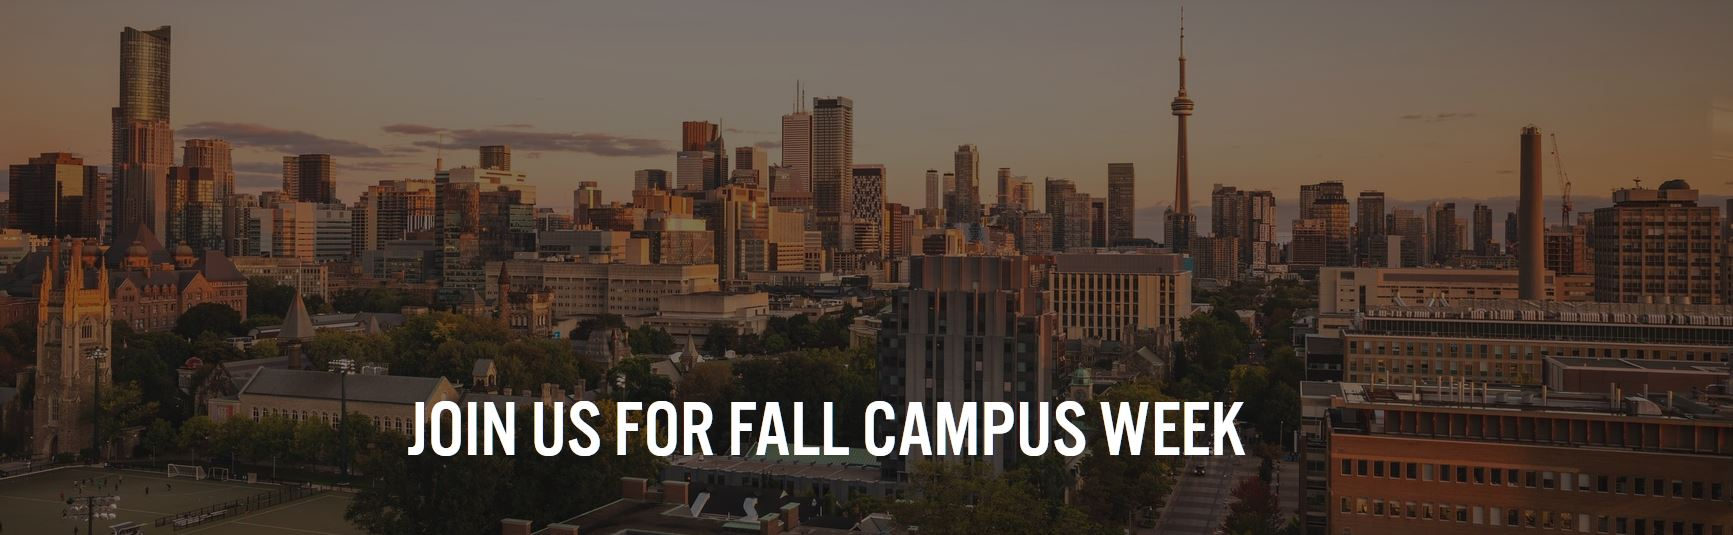 Join us for Fall Campus Week